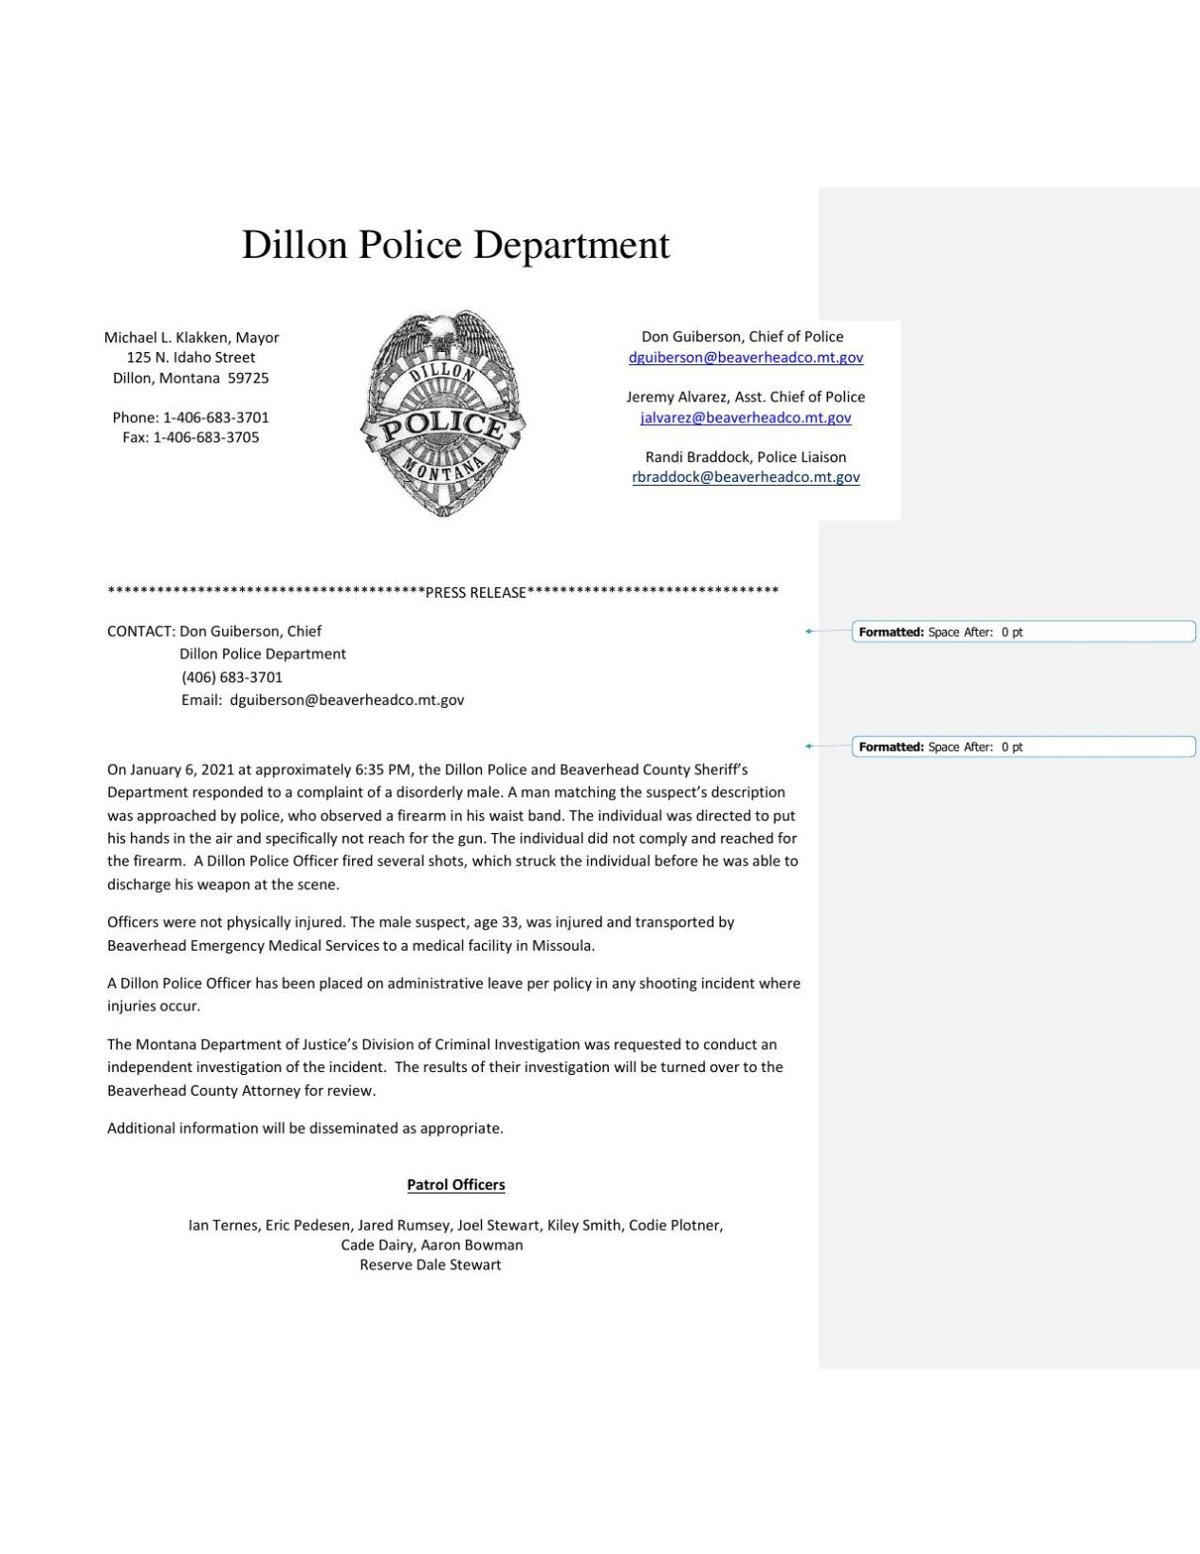 Dillon Police Department officer involved shooting press release